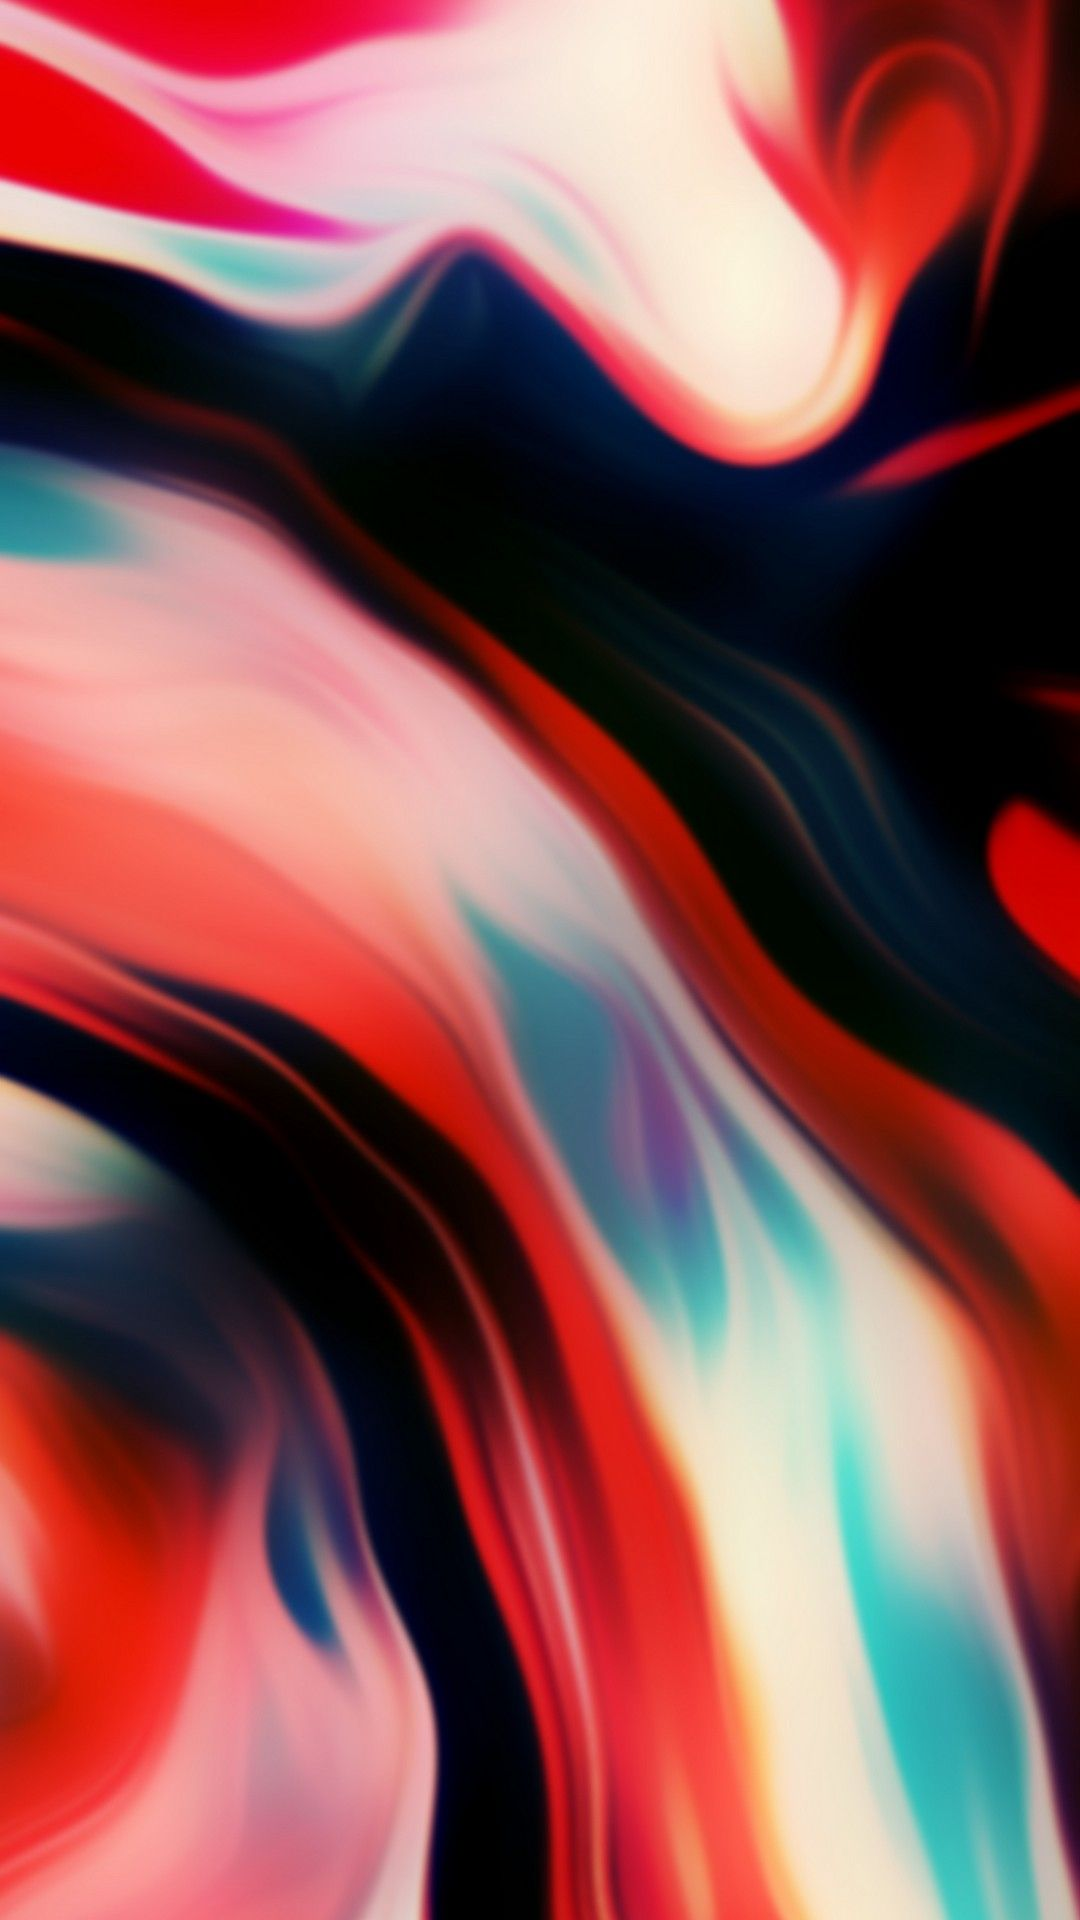 fluid iphone 8 wallpaper hd - 2018 iphone wallpapers